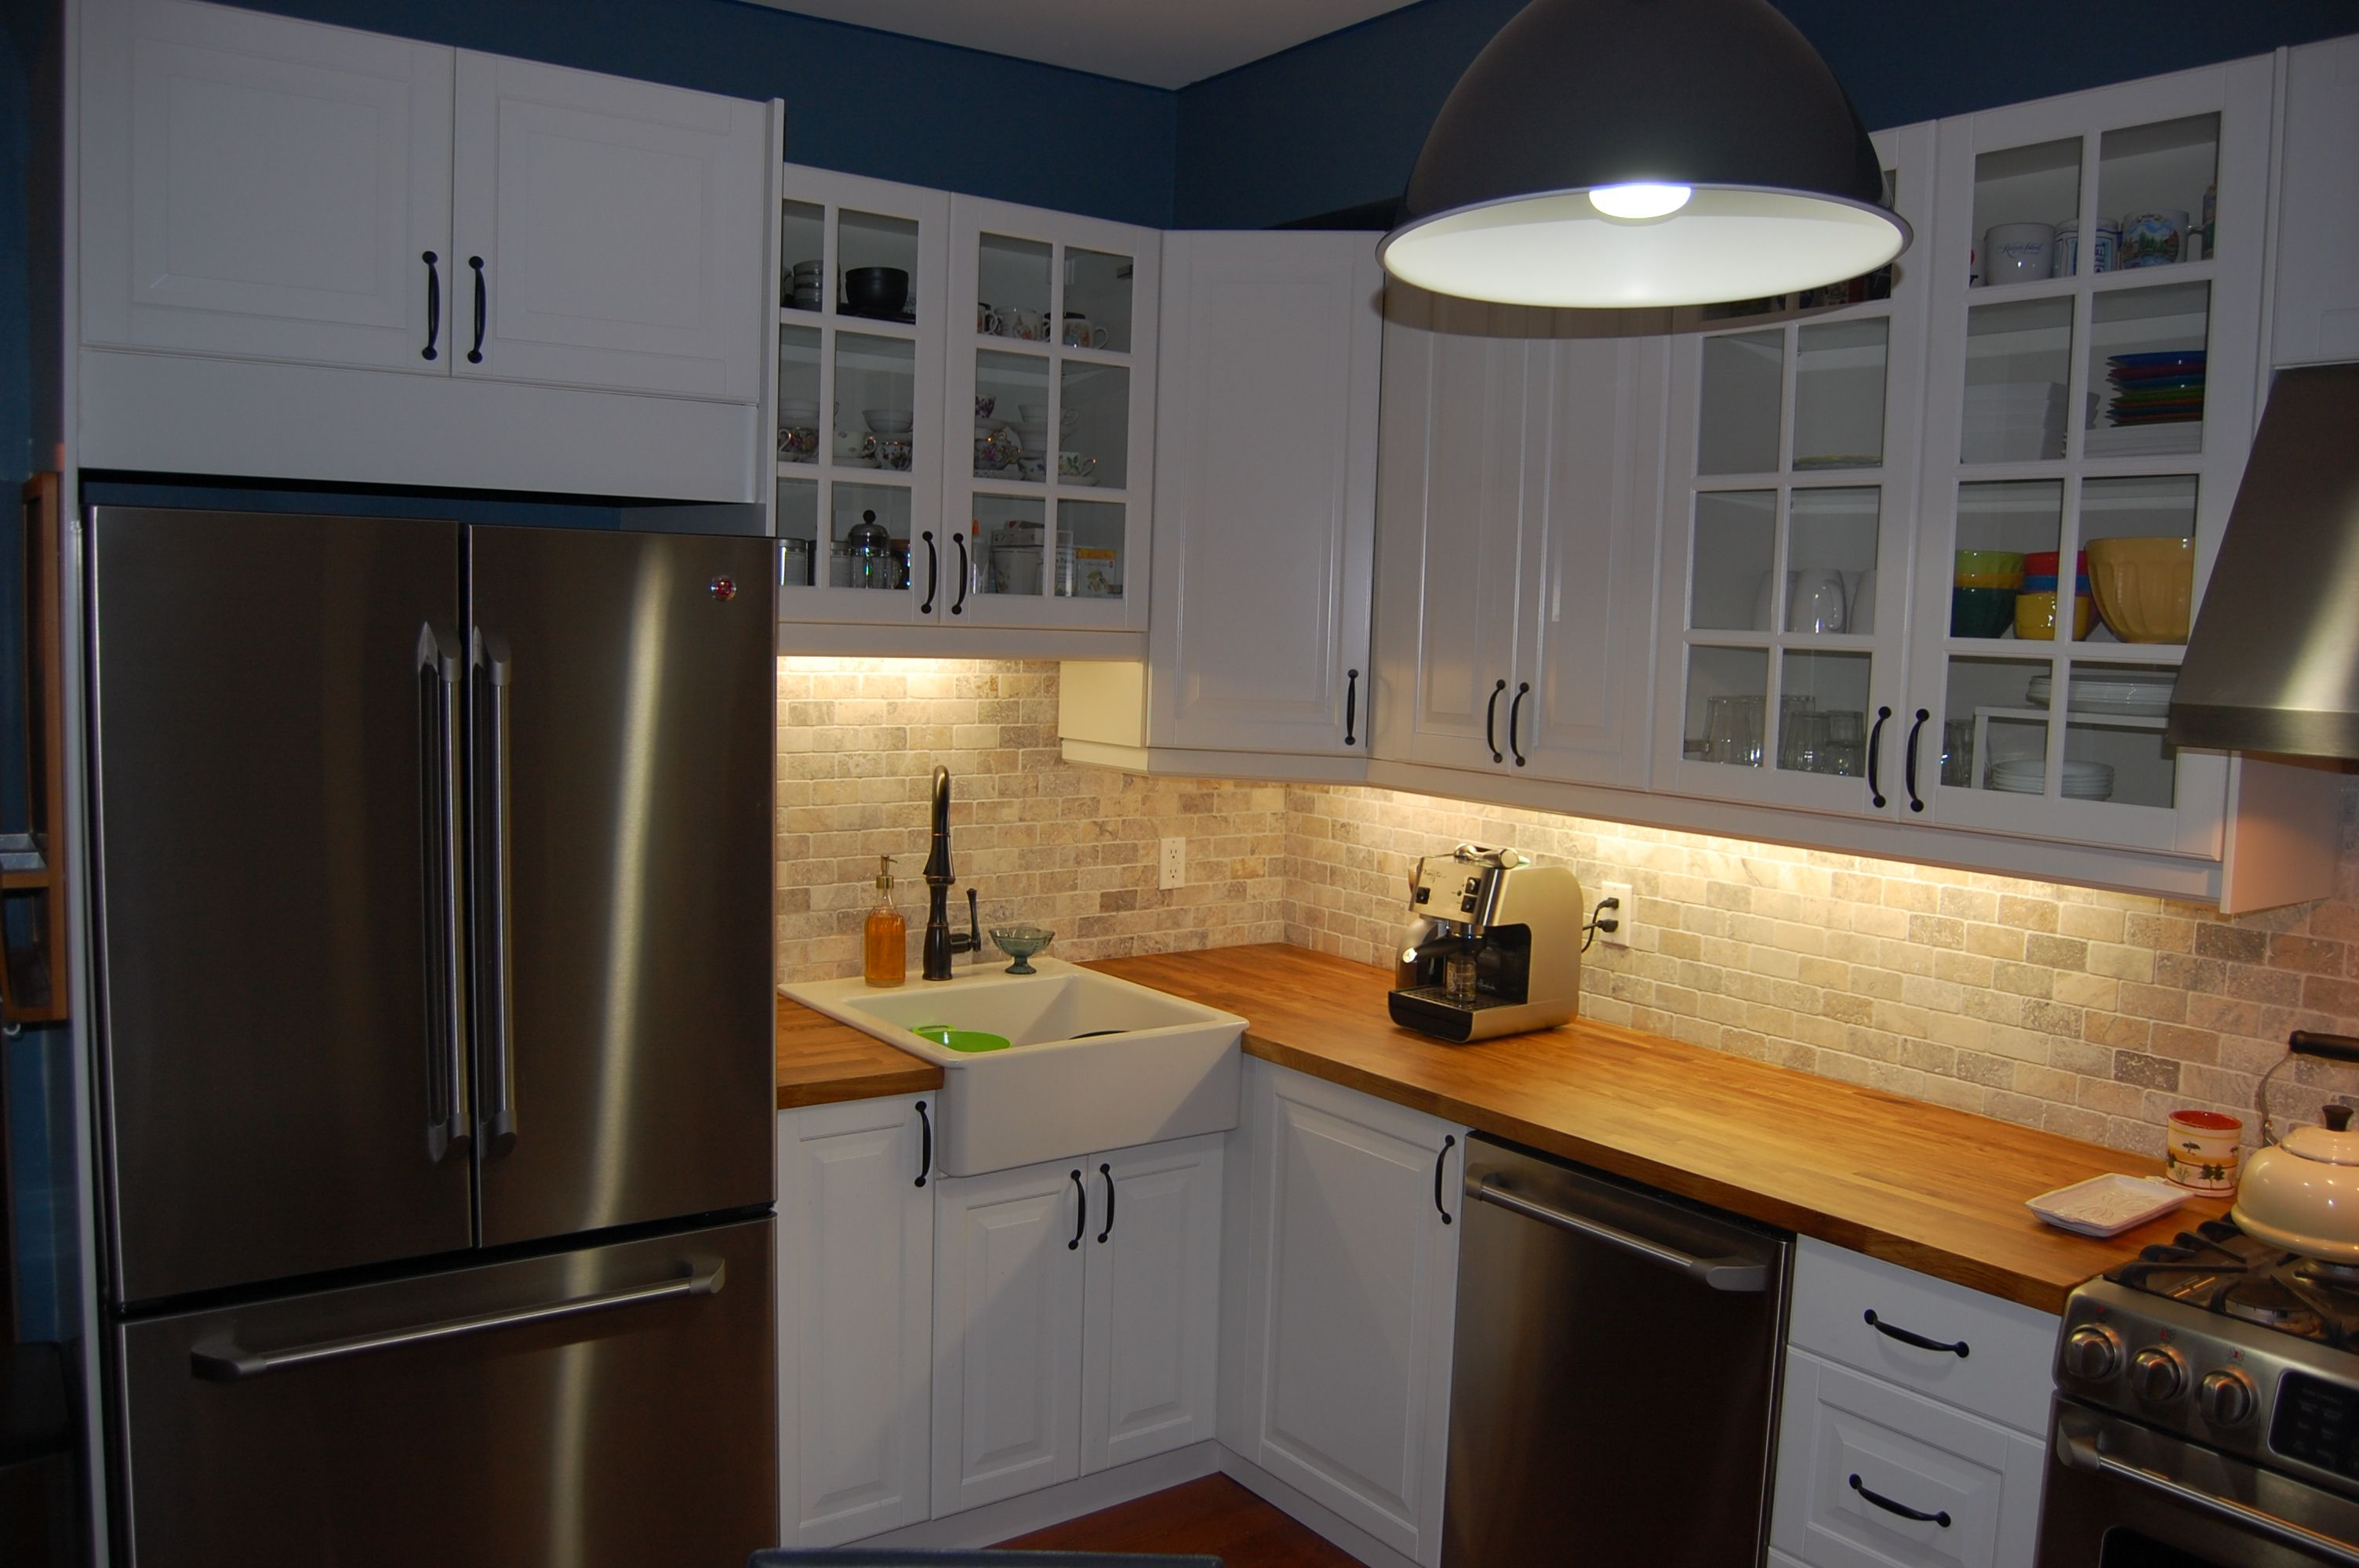 Kitchen White Ikea Cabinets Butcher Block Counter Tumbled